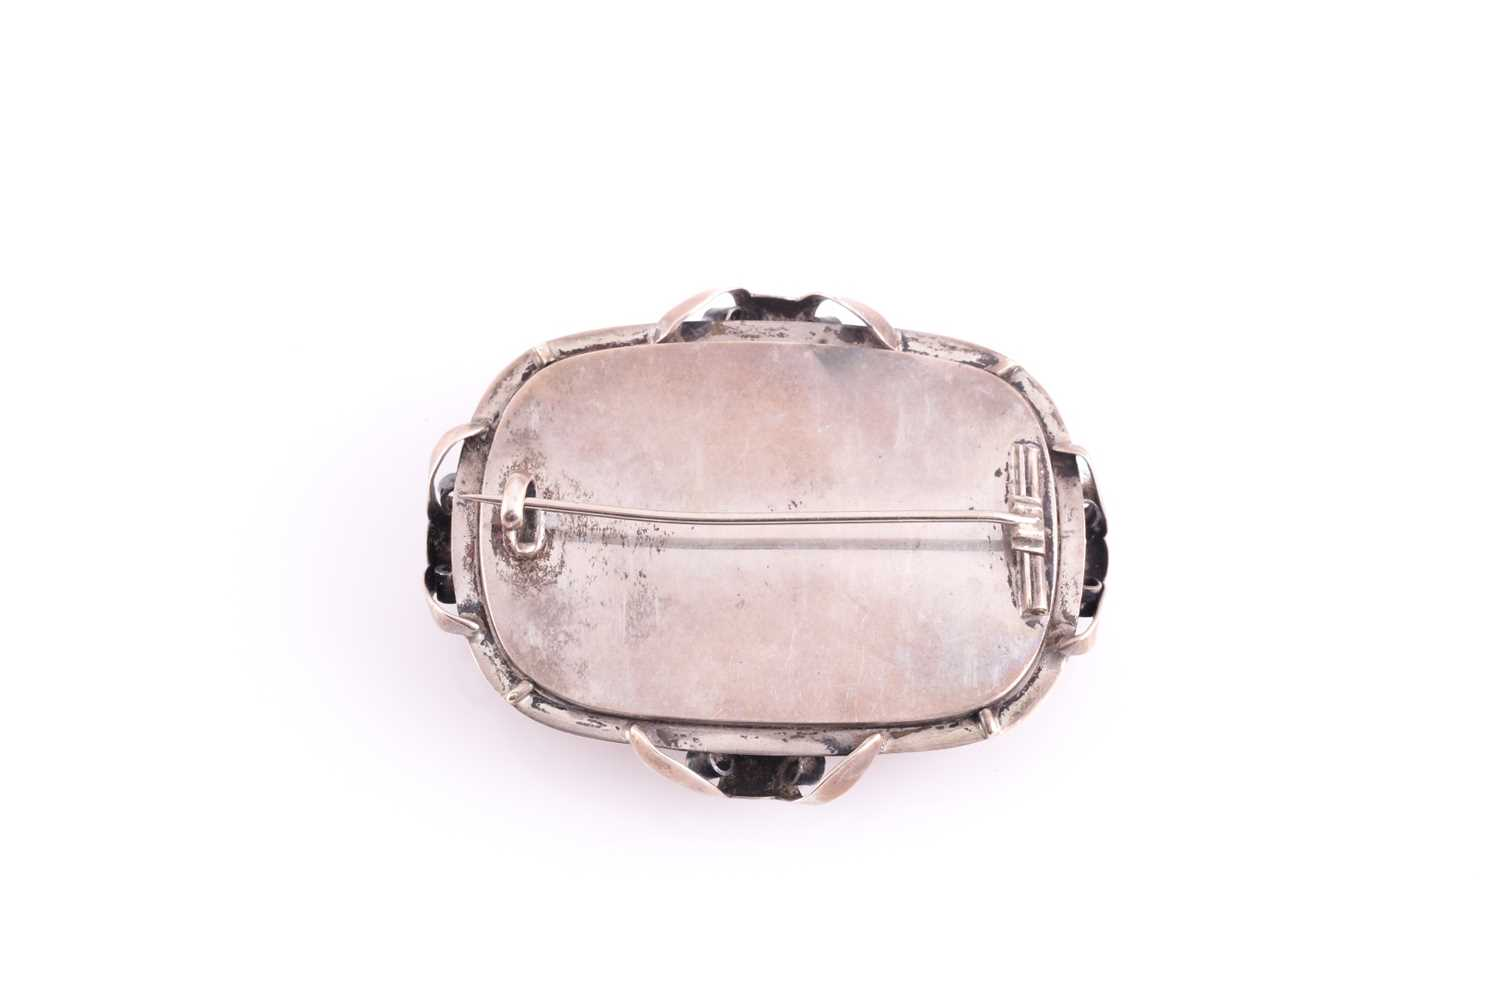 An Art Nouveau silver and amber brooch, the large rectangular single stone amber plaque withing an - Image 3 of 3